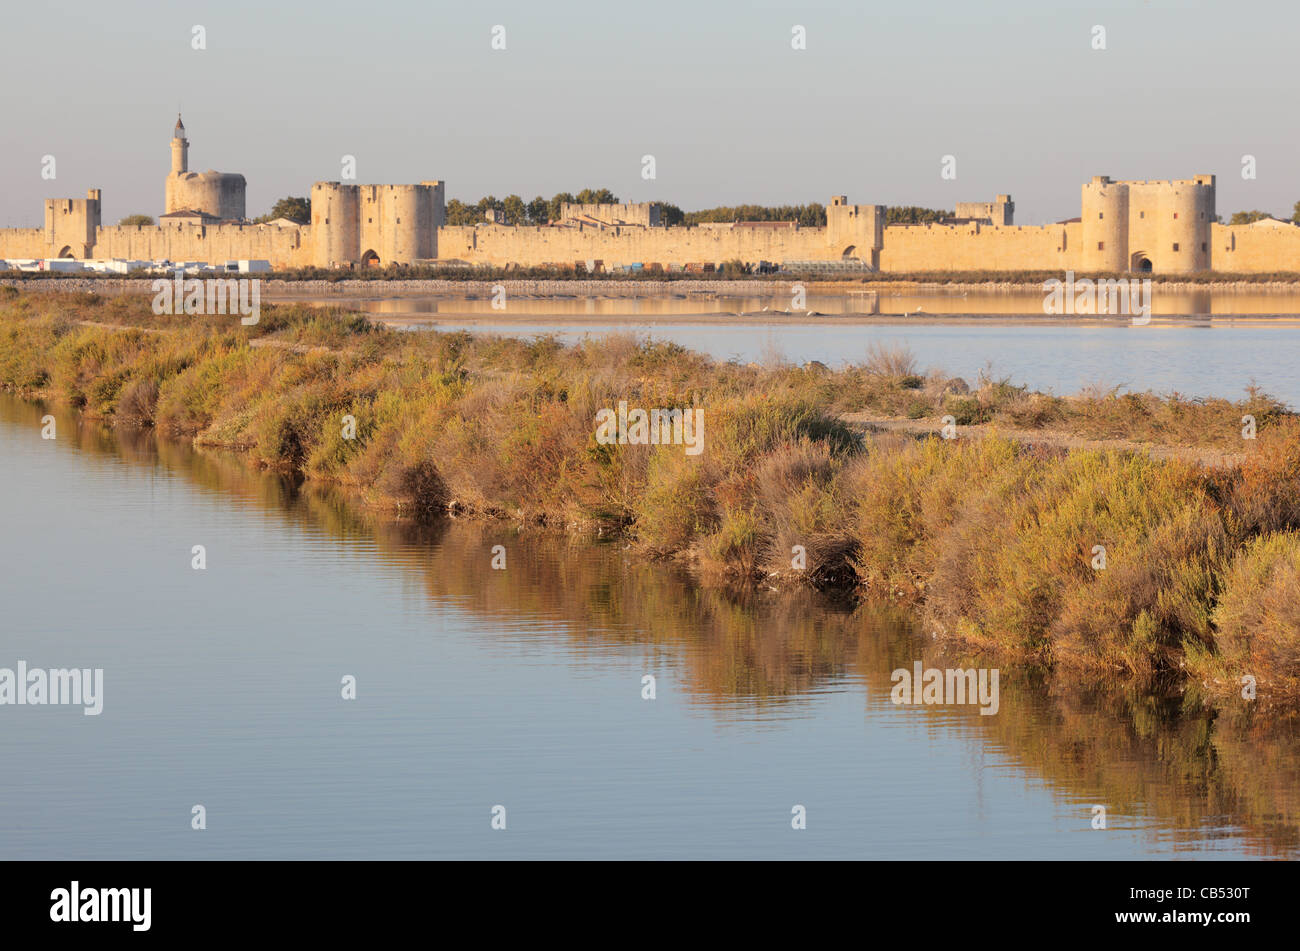 Medieval town Aigues-Mortes between swamps of the Camargue, France - Stock Image